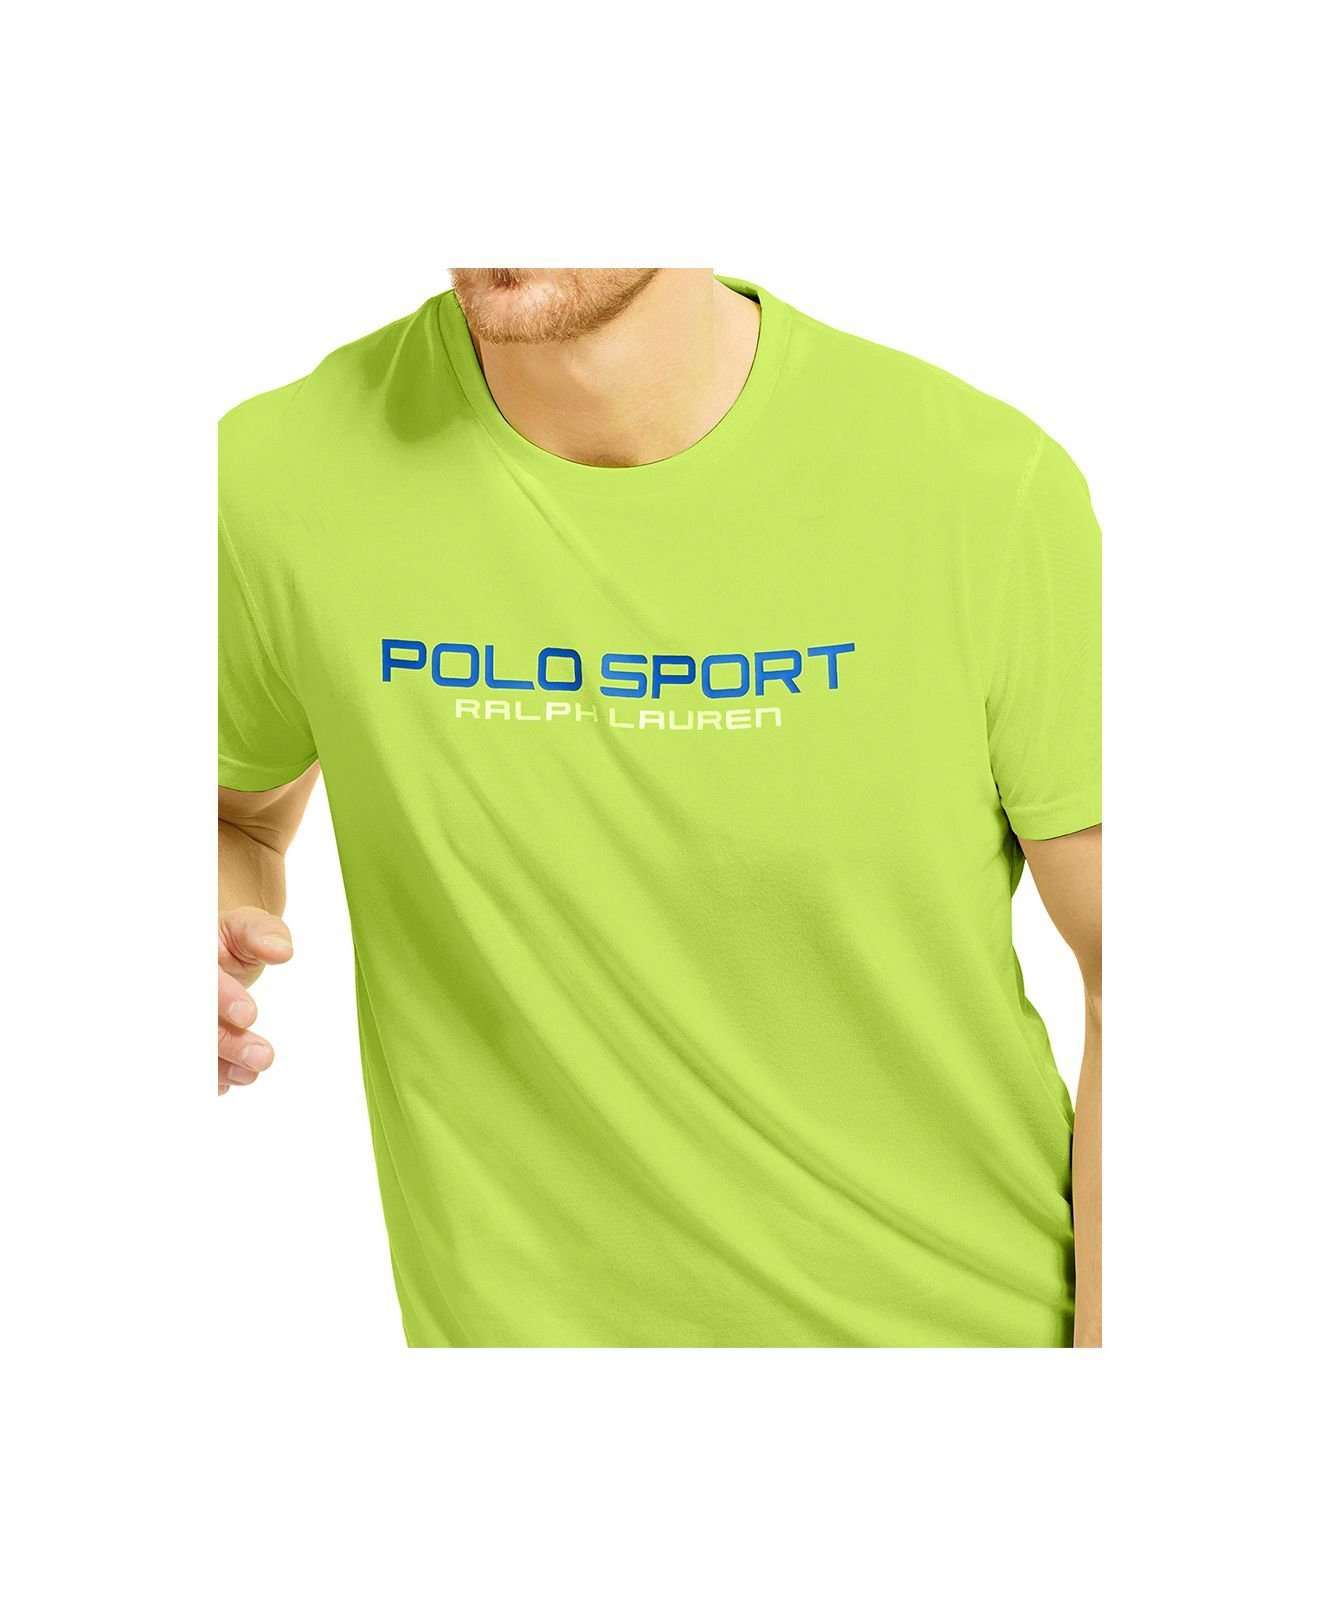 polo ralph lauren polo sport performance jersey t shirt in. Black Bedroom Furniture Sets. Home Design Ideas